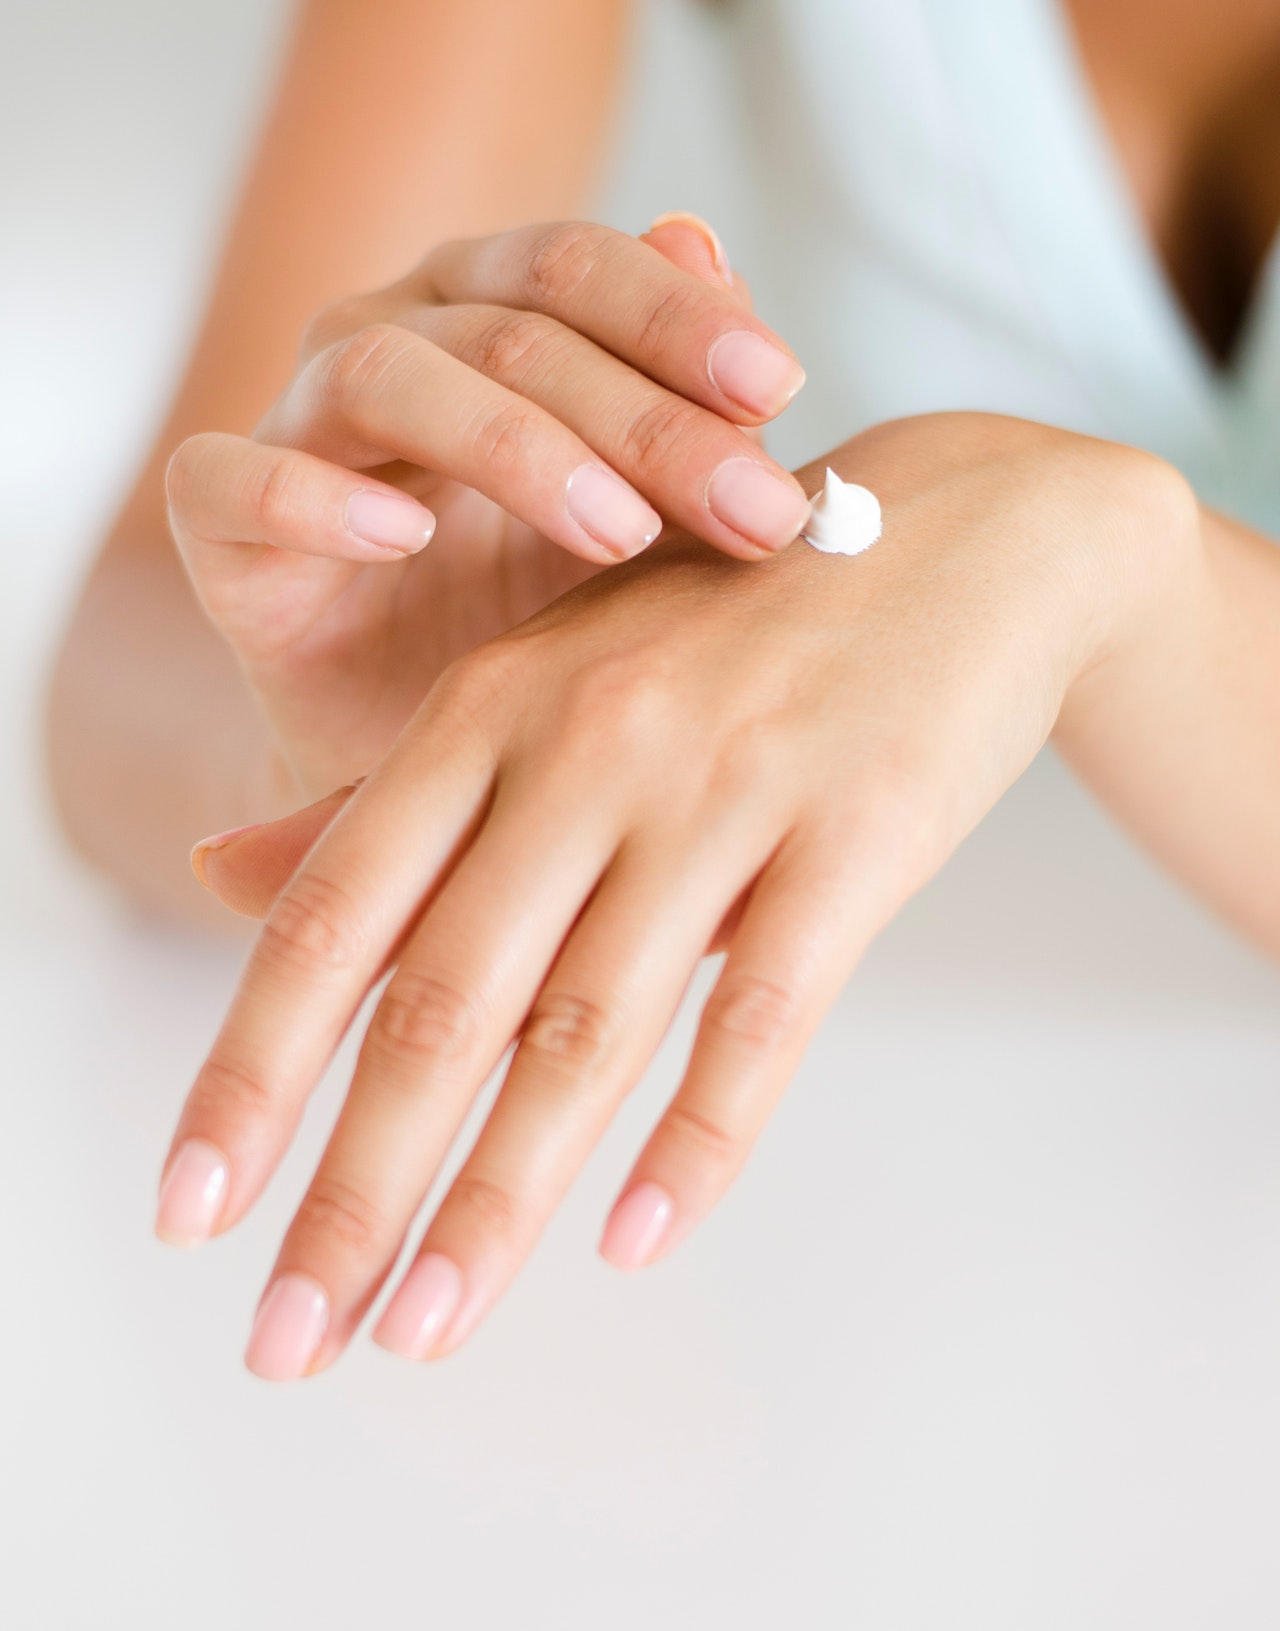 Smooth and Healthy The Benefits of Daily Hand Cream Usage article image by Mayerling Skincare